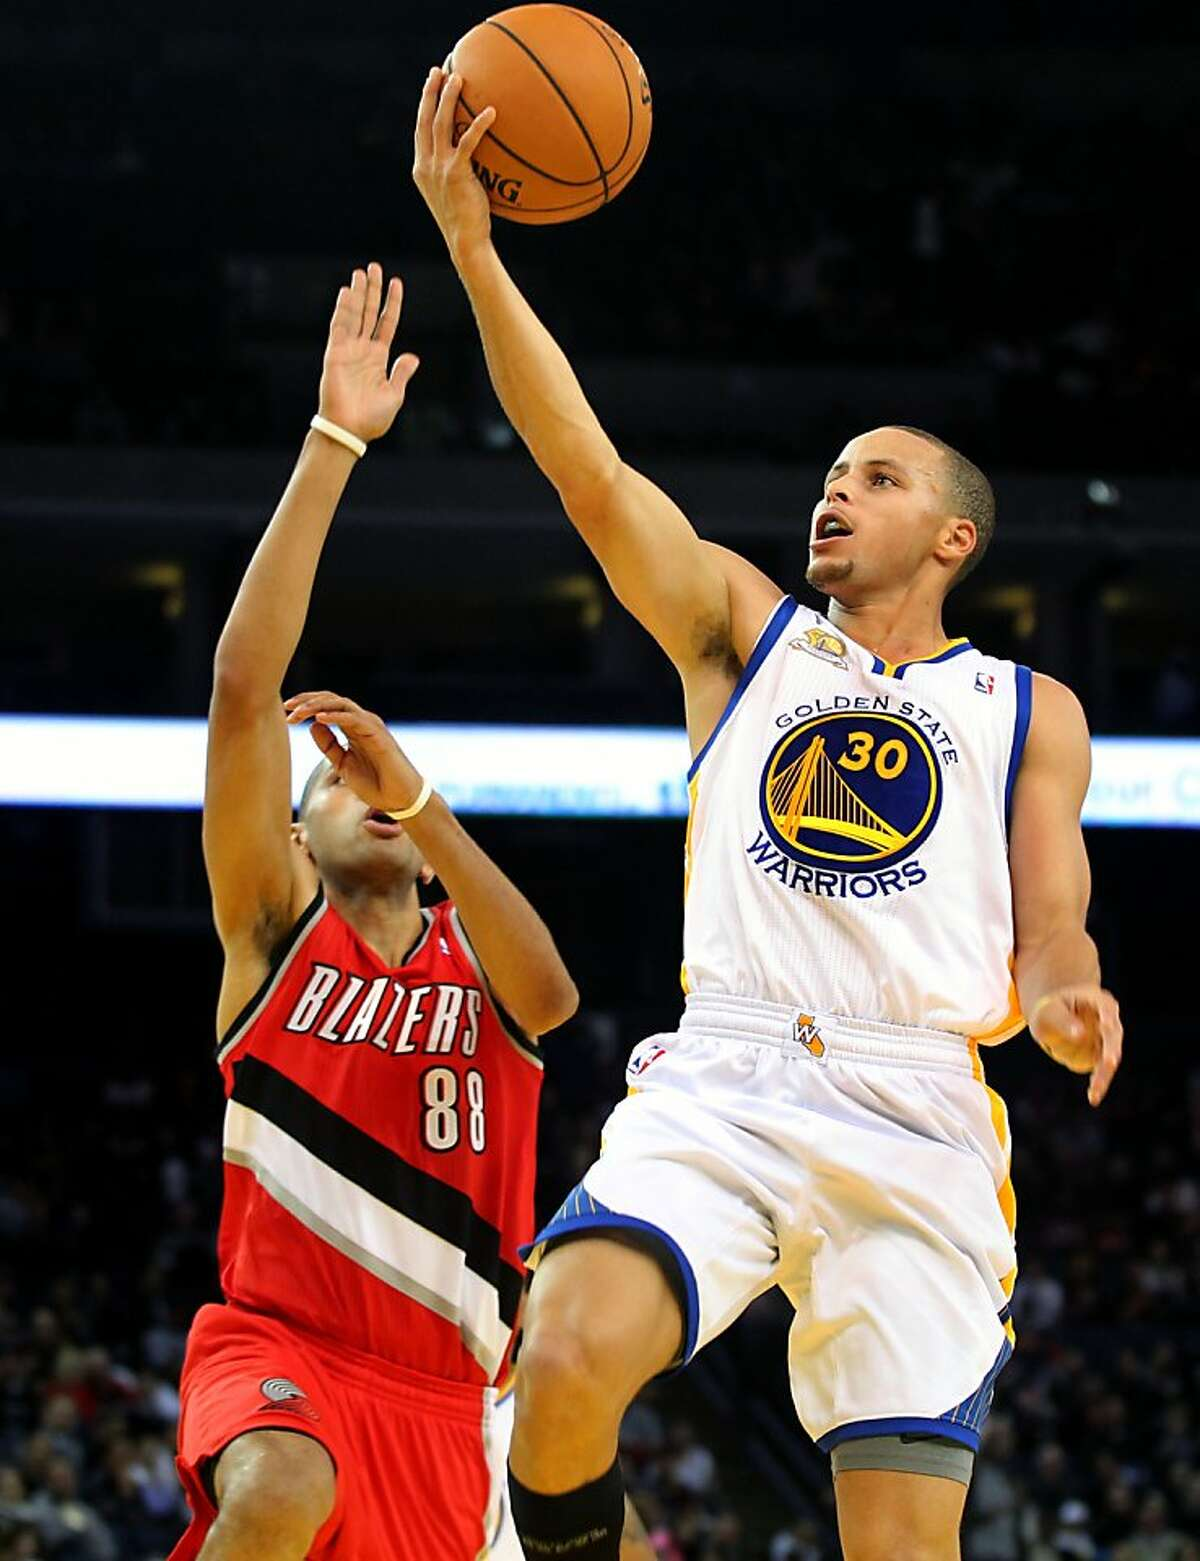 Golden State Warriors' Stephen Curry (30) scores over Portland Trail Blazers Nicolas Batum (88) during the first half of their NBA basketball game in Oakland, Calif., Wednesday, January 25, 2012.